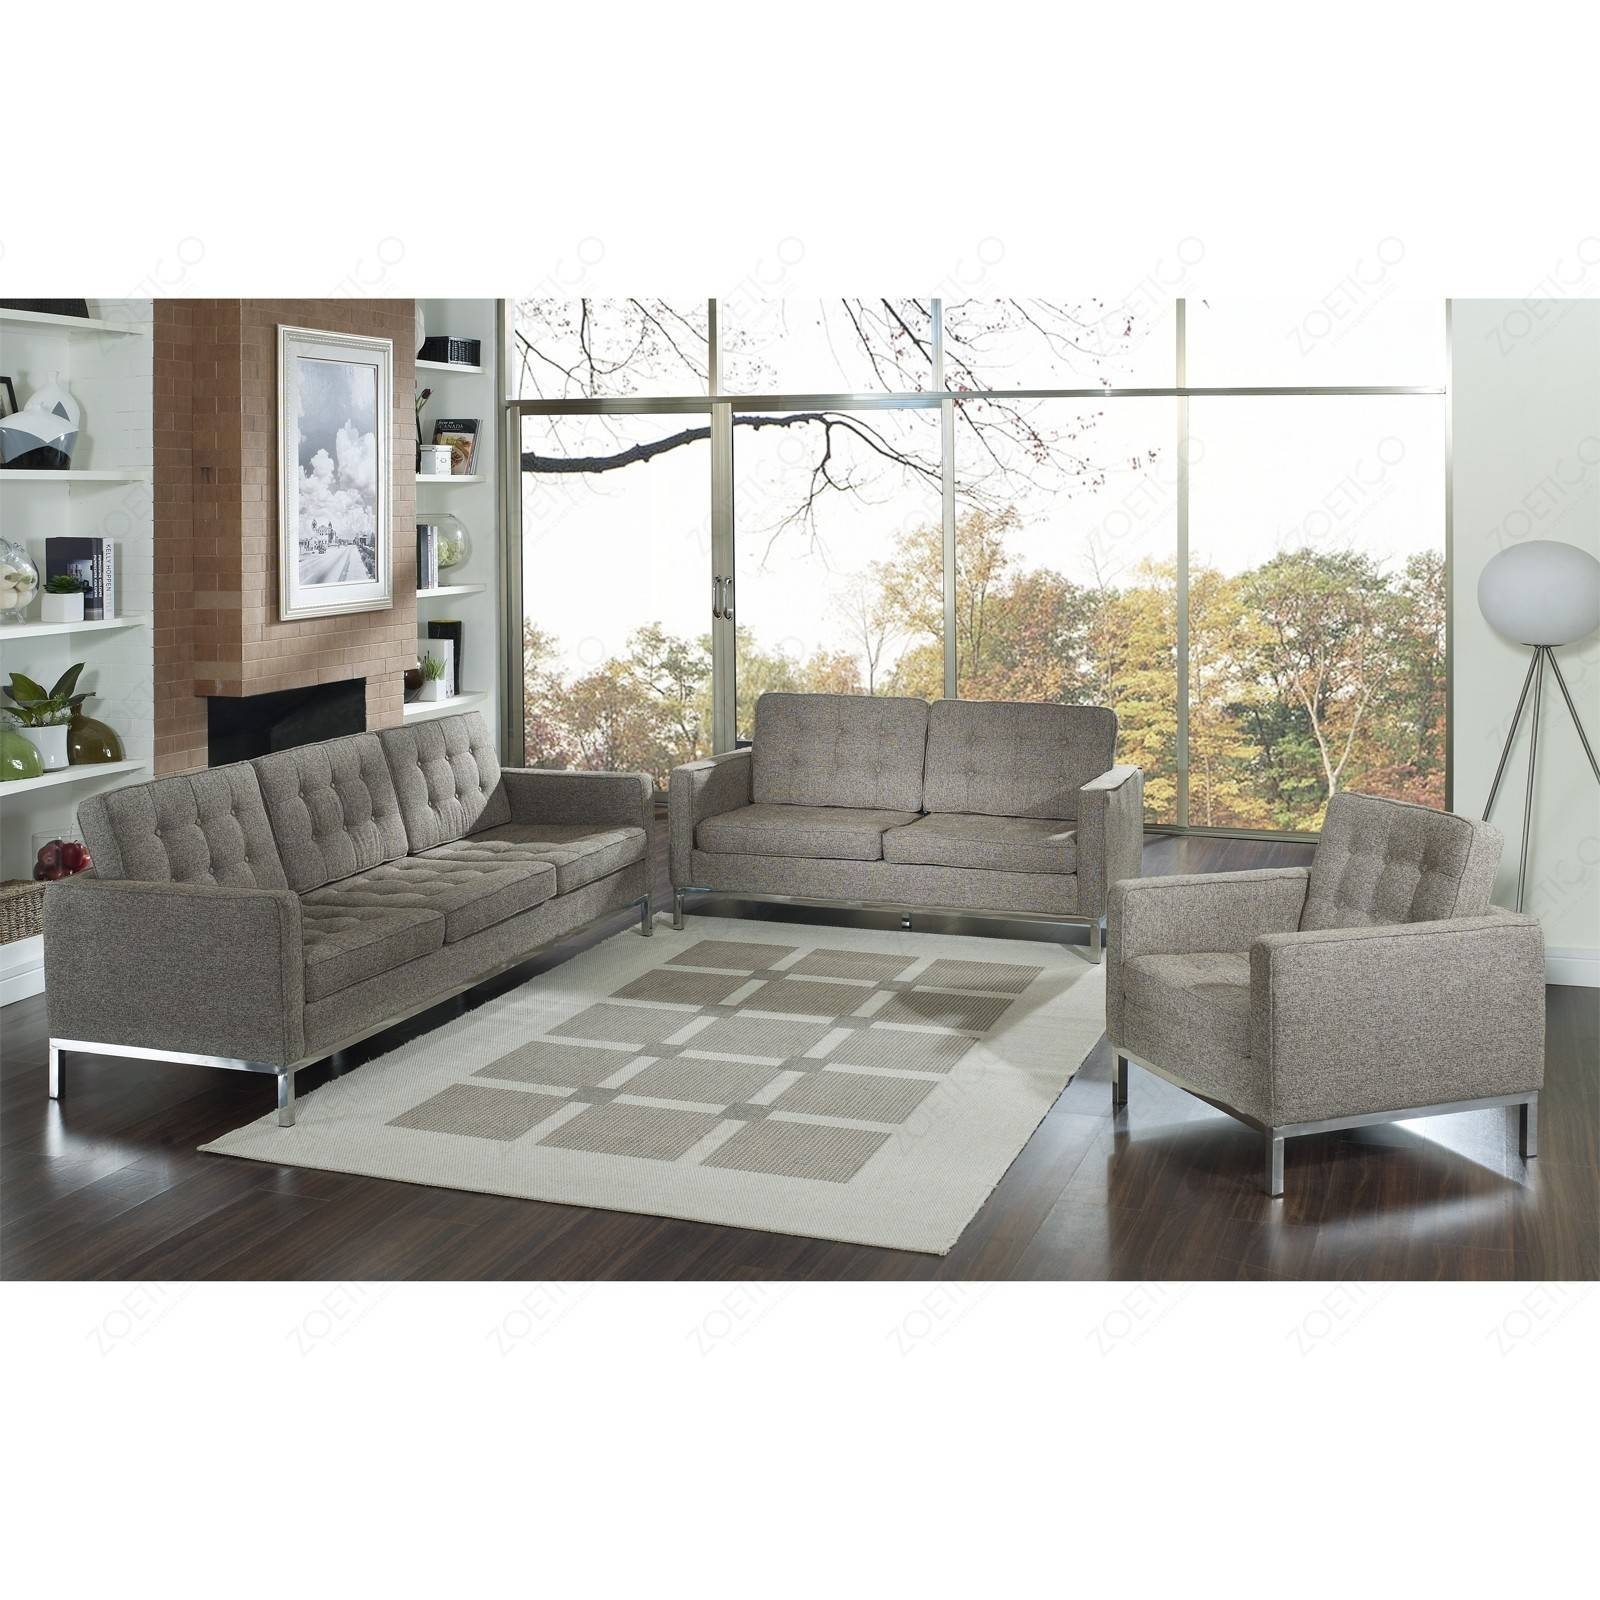 Florence Knoll Sofa with regard to Florence Knoll Fabric Sofas (Image 11 of 25)